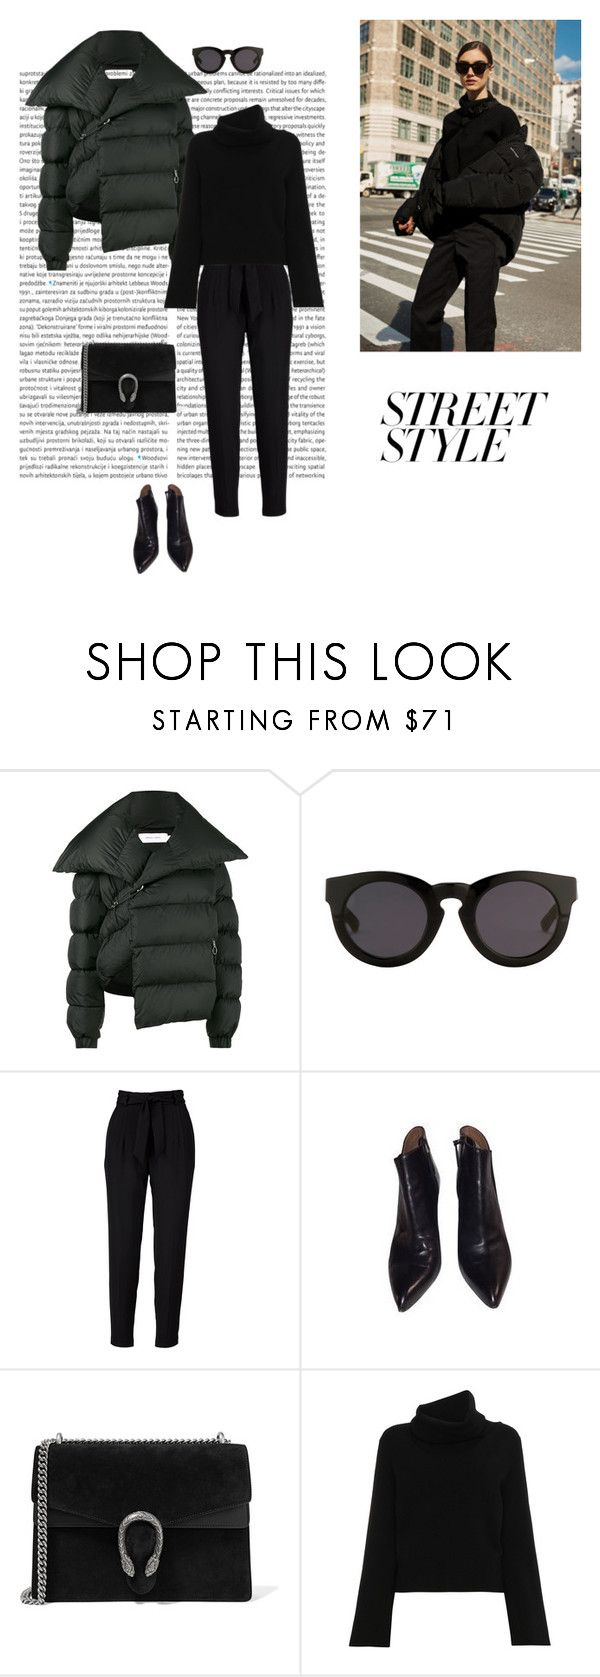 """17/02"" by dorey on Polyvore featuring Marques'Almeida, 3.1 Phillip Lim, Alaïa, Gucci, Chloé, black and winterstyle"